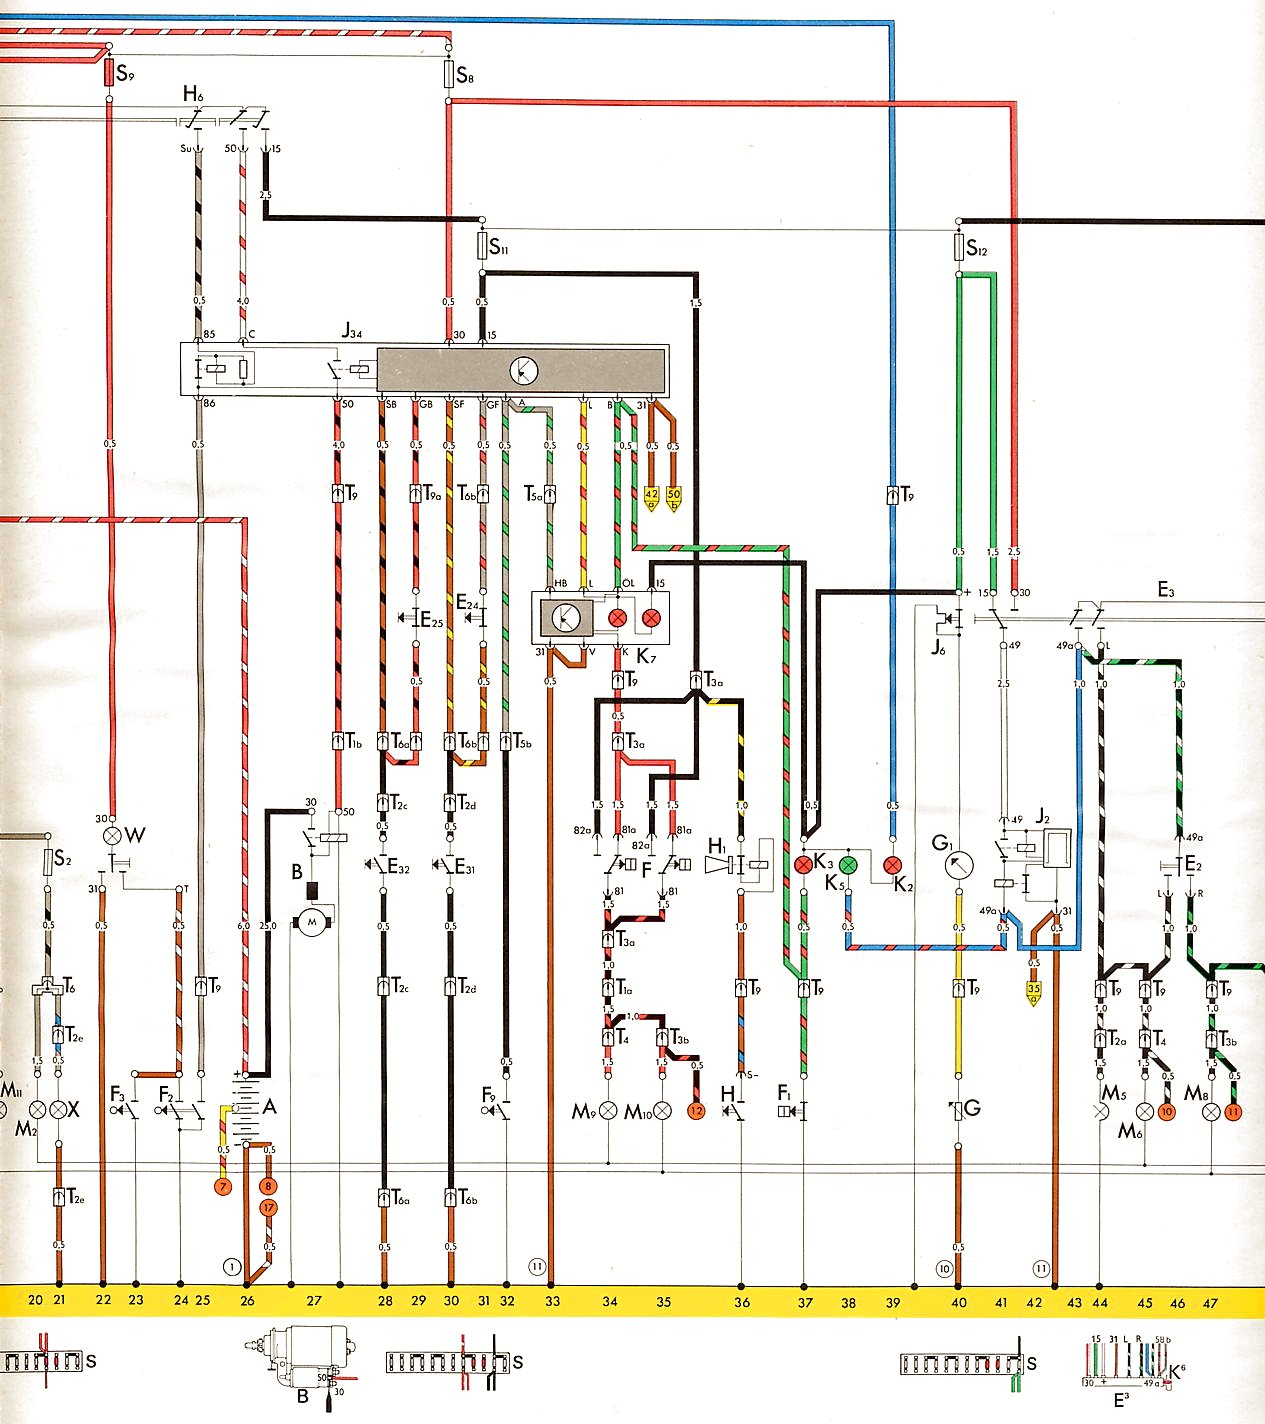 78 Vw Bus Wiring Diagram Will Be A Thing Bug Regulator What Goes Here Shoptalkforums Com 1973 1978